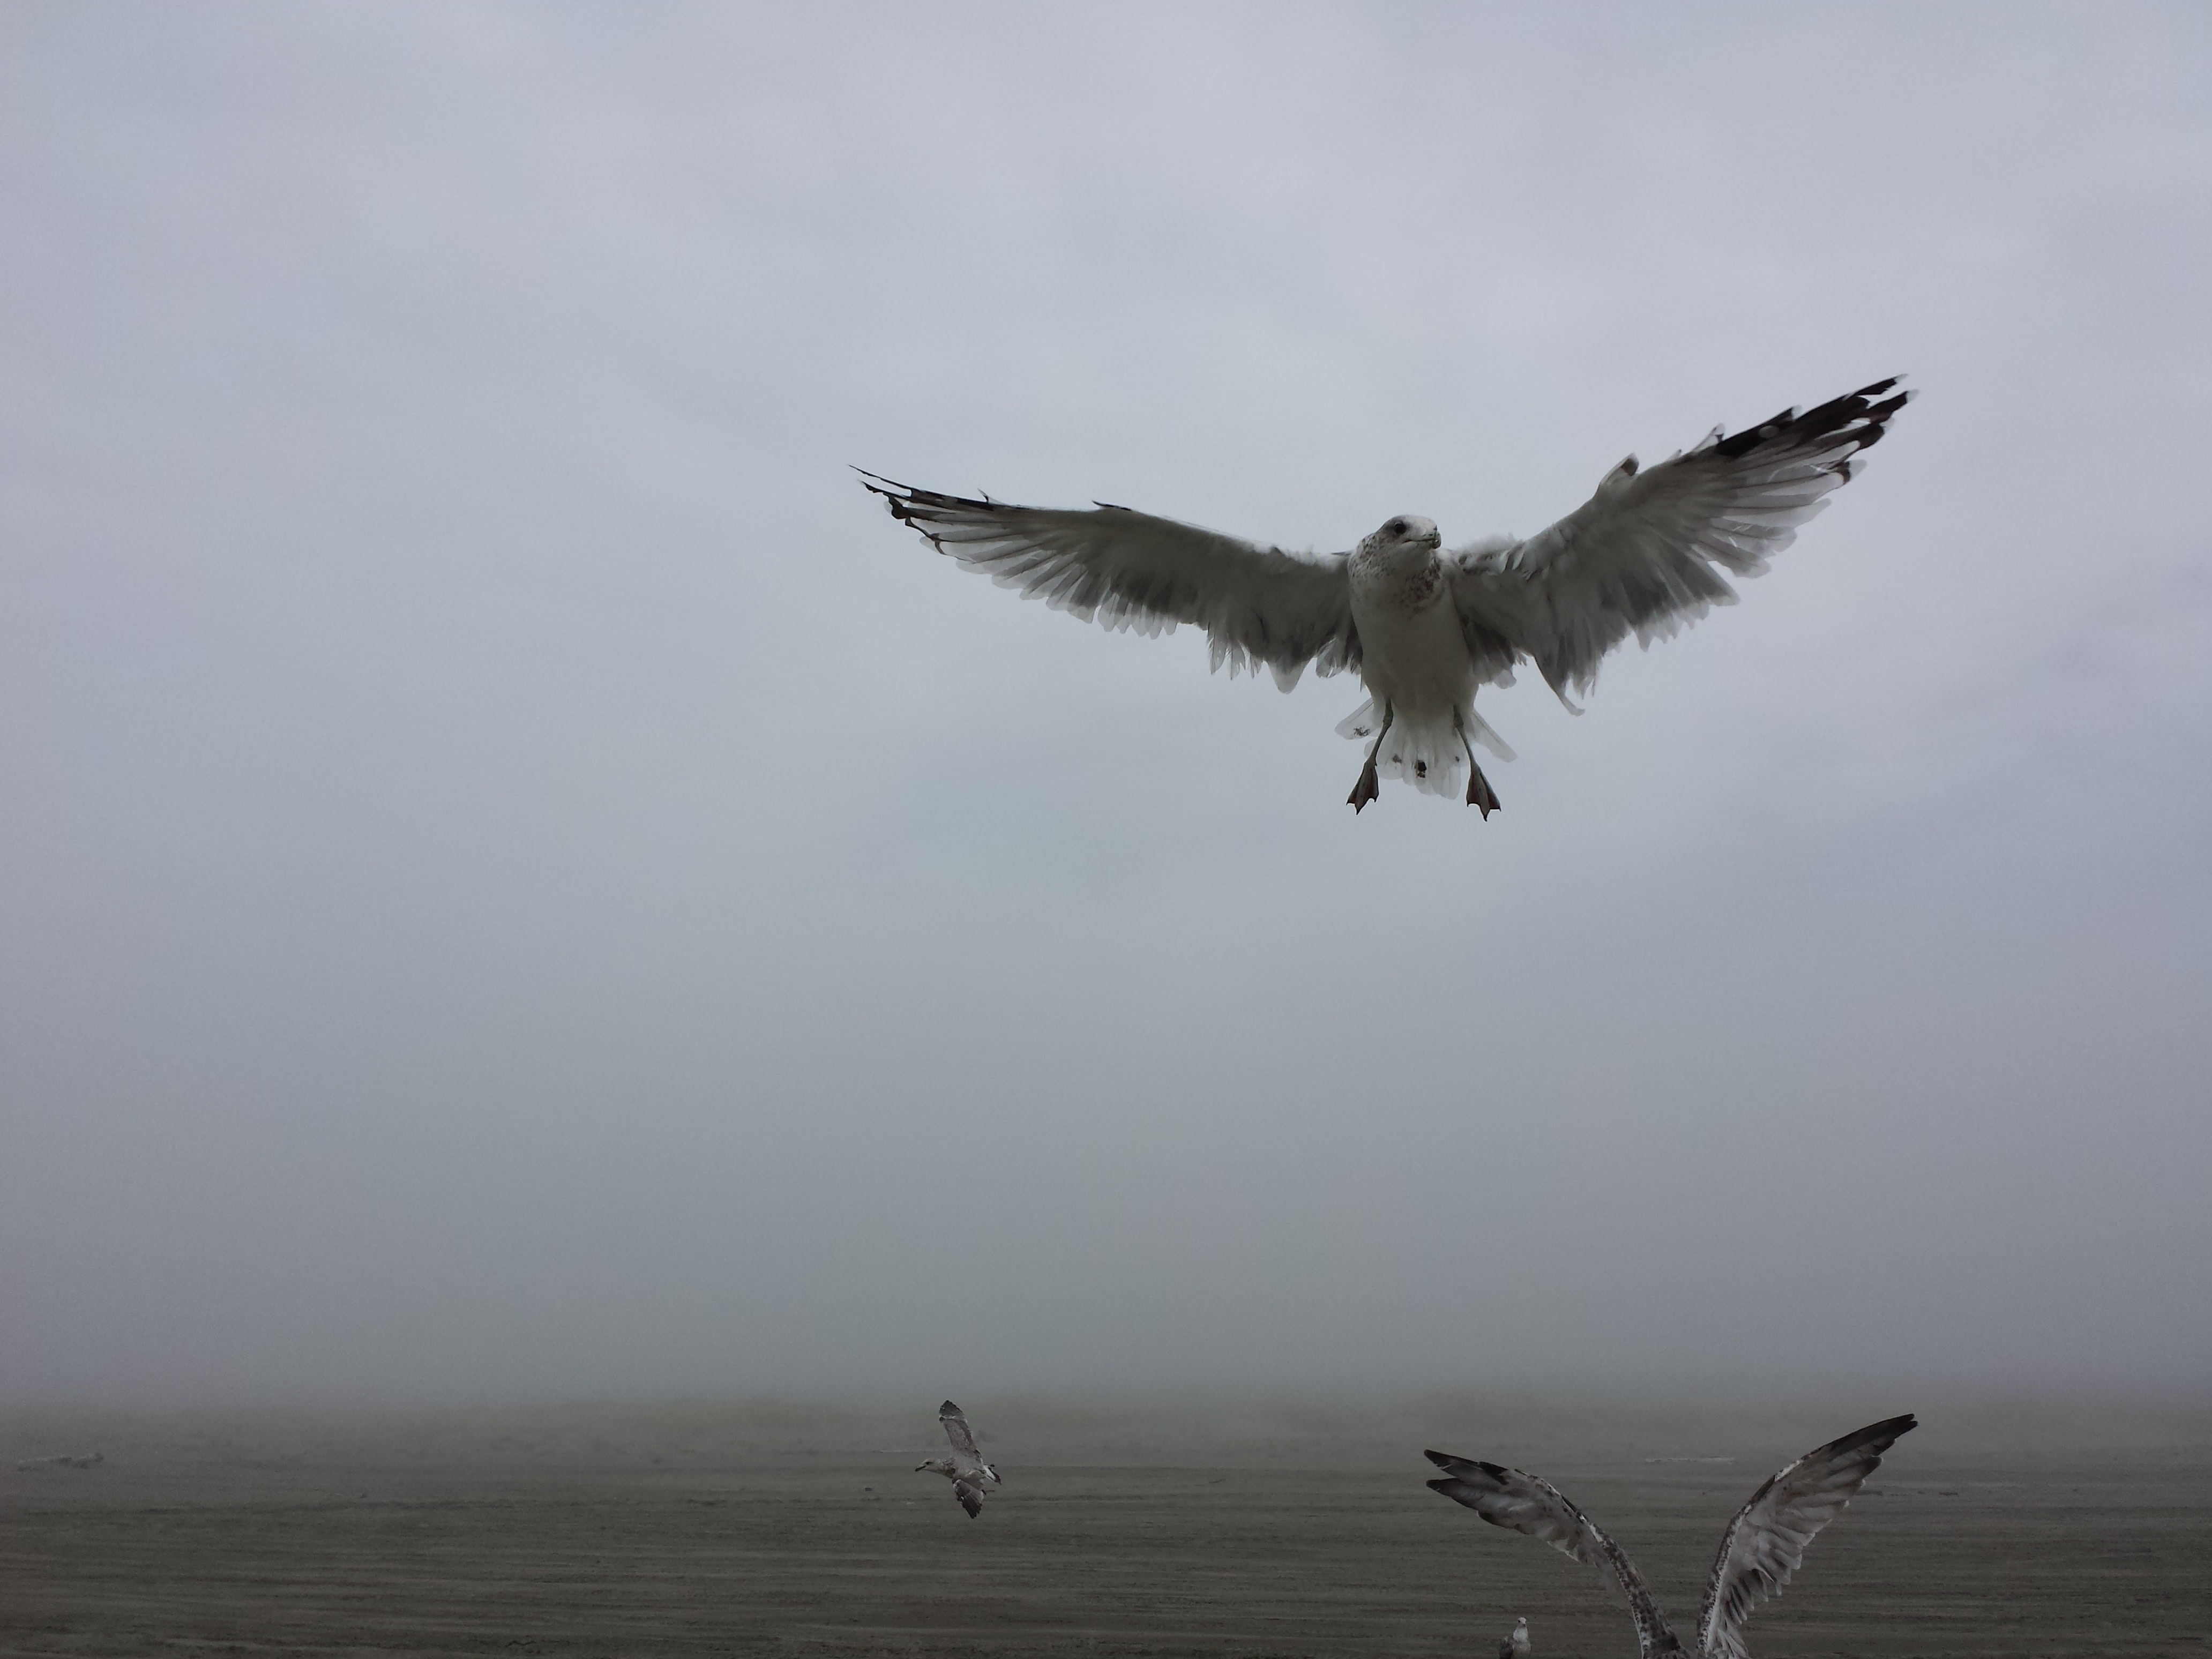 Seagulls fly over the ocean shore on a foggy day